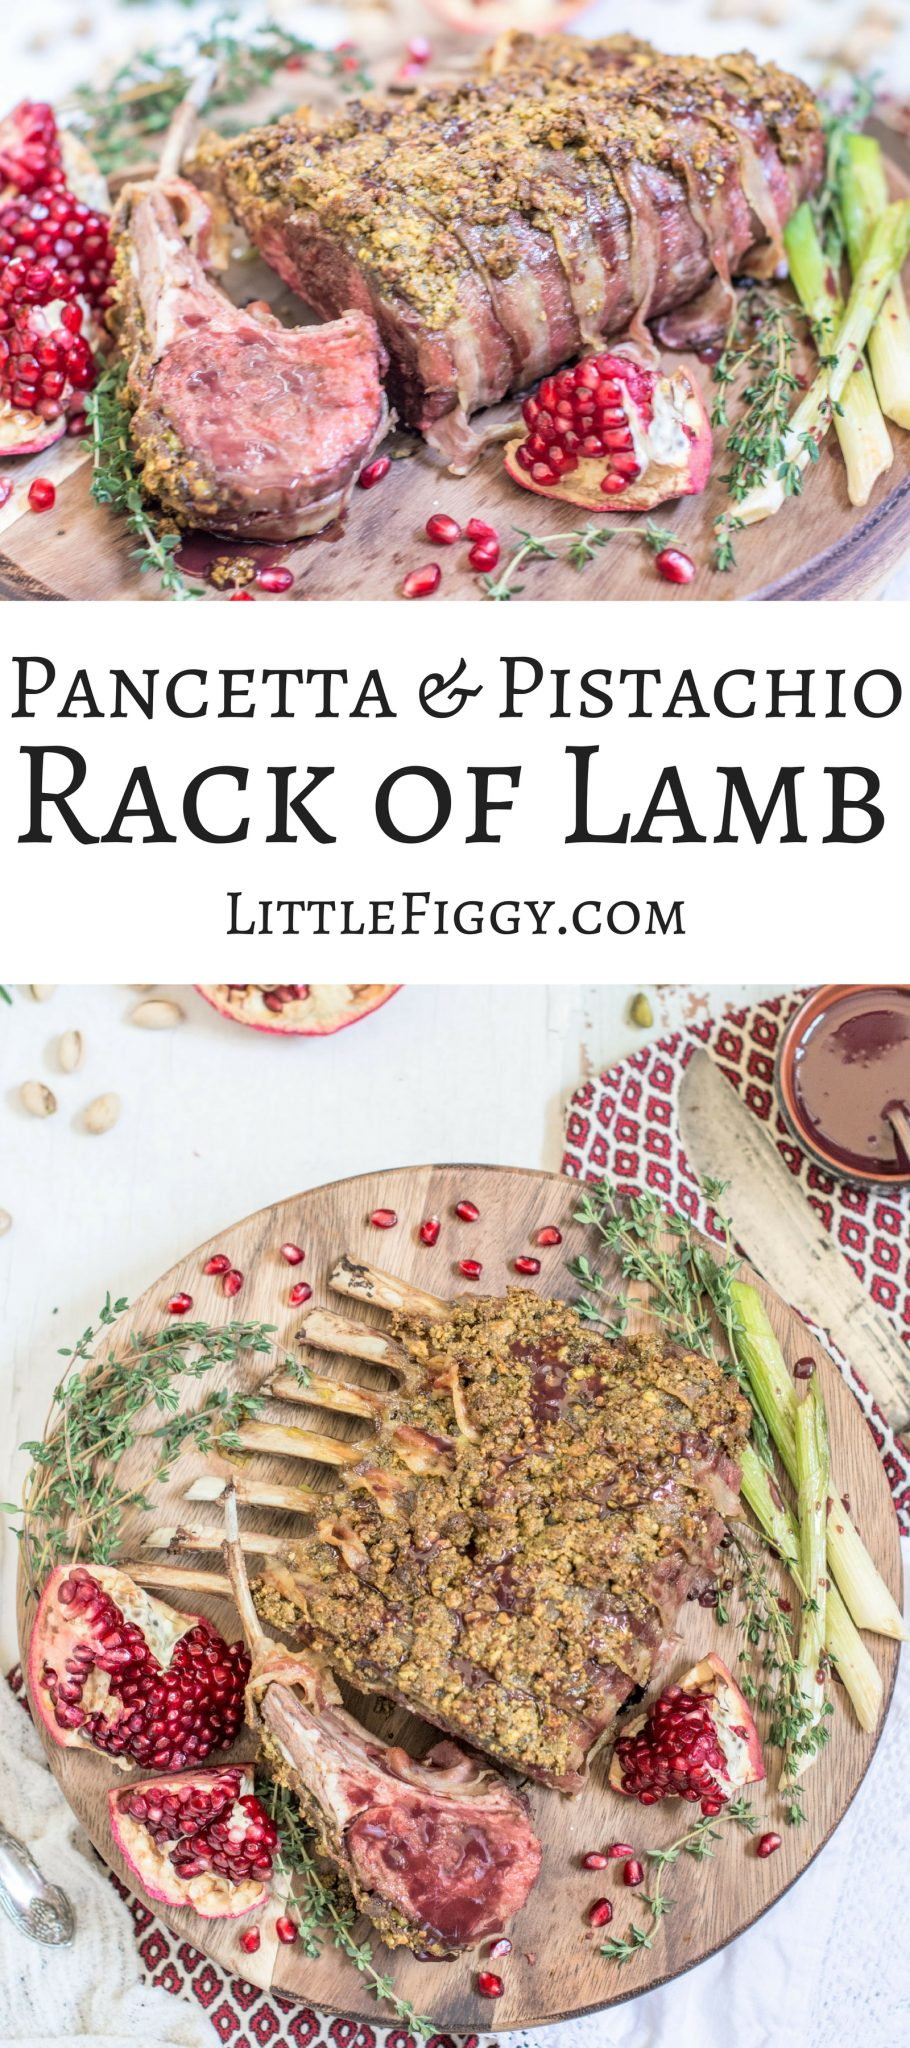 Pancetta wrapped Pistachio Rack of Lamb with a velvety and rich Pomegranate Sauce for drizzling! Get the recipe at Little Figgy Food! @TheFreshMarket #TFMfortheHolidays #ad